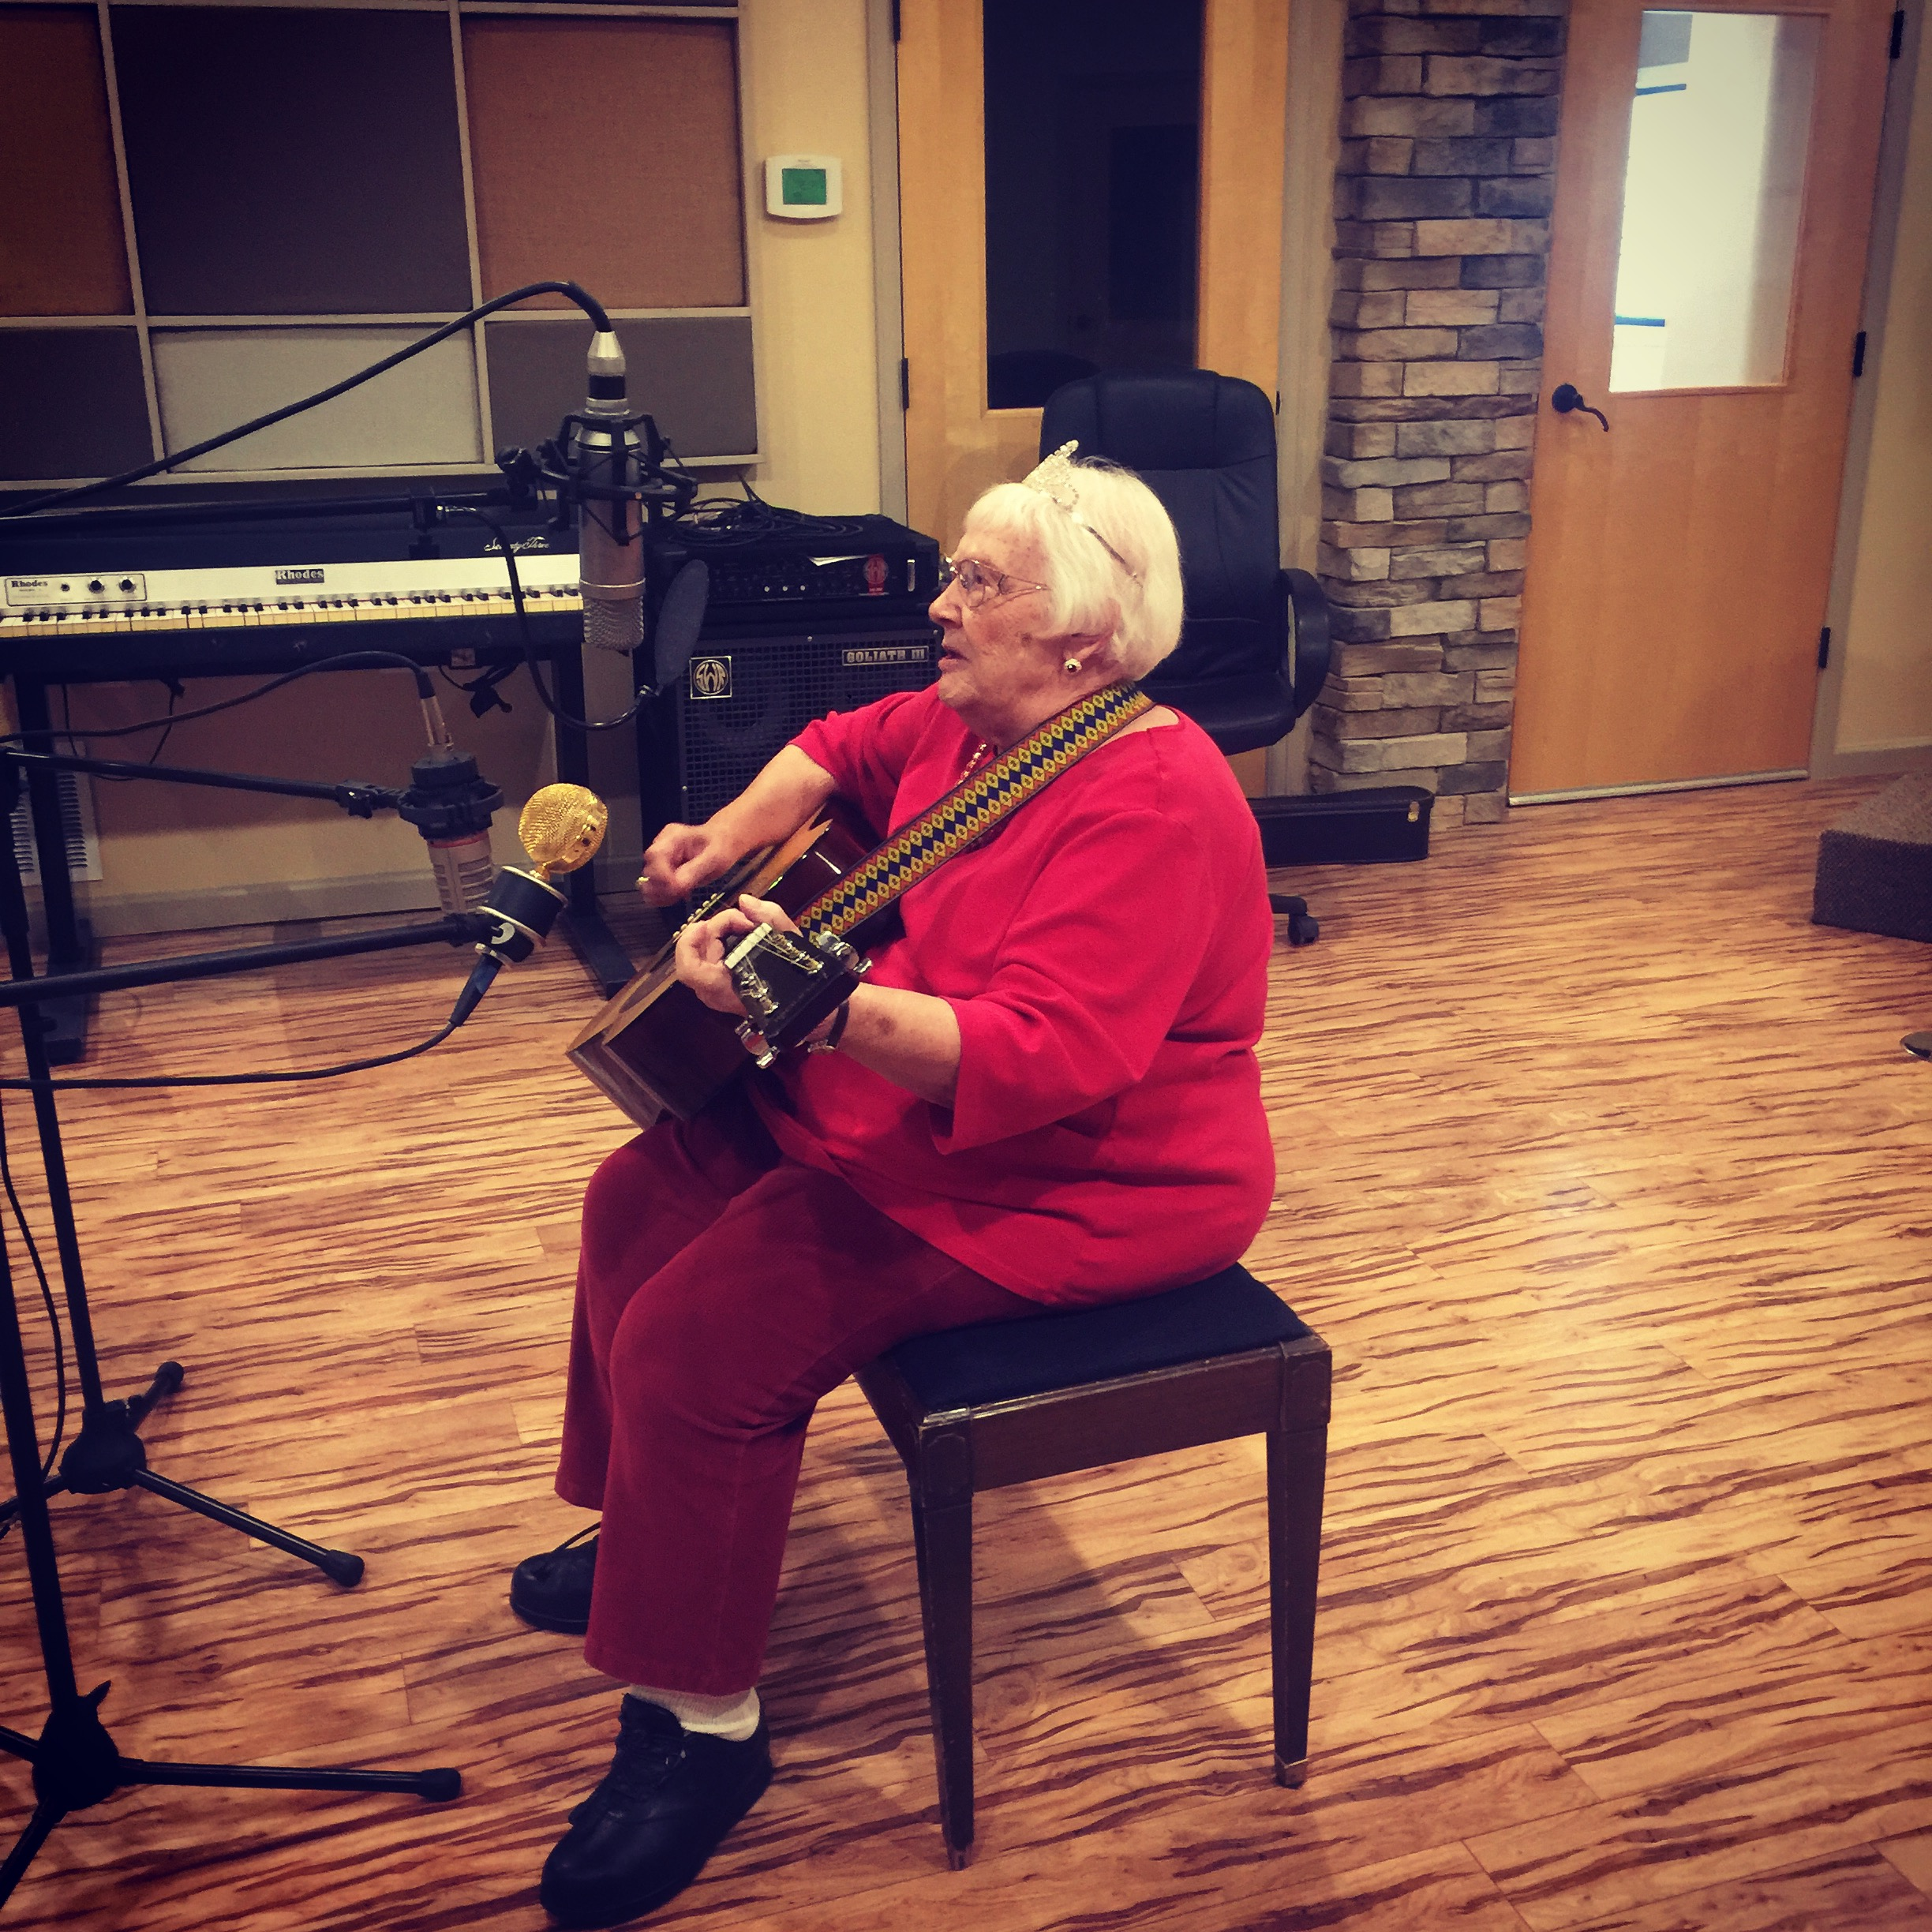 "89-year-old fulfills lifelong musical dream by recording song in professional studio - BY JON POMPIA THE PUEBLO CHIEFTAIN Published: October 17, 2016; Last modified: October 17, 2016Some want to fly in a hot air balloon or ride a zip line. Others ask for a familyreunion or to take in a major league sporting event.But not Mary Ward.She just wants to jam. Thanks to the Wish of a Lifetime, which fulfills long-held dreams of seniors, the spry 89-year-old resident of Brookdale El Camino, a runner-up in this year's Silver Queen pageant, spent Monday afternoon, in the parlance of old school recording artists, ""putting it on wax.""At Carl Lucero's state-of-the-art Perfect World recording studio,Ward, acoustic guitar in hand, cut a version of a song she first learned from her mother as a young child.Entitled ""The Burglar Song,"" it's a witty, countrified ditty about a burglar who breaks into the home of an unsightly old maid and begs to be shot rather than give in to her amorous demands.While Ward obtained a copyright on the tune years ago at the encouragement of her husband — ""He told me if I didn't then somebody else probably would"" — she never had the opportunity, nor funds, to professionally record it.But that all changed with an application to Wish of a Lifetime, submitted by Janella Sandoval, executive director of Brookdale El Camino.""I've been singing all my life and even though I thought about it as a kid, I never had a chance to record anything,"" Ward said. ""But there's a lot of people who want copies of my song — my kids, grandkids, lots of people at Brookdale."" While Lucero tested the levels on a trio of microphones set up to capture Ward's voice and guitar, she ran through the song like it was nobody's business but her own.And the grass-roots magic wasn't lost on Lucero, who is no stranger to recording big-timers.""You are amazing, girl! My gosh, I can't believe it. Seriously, I wasn't expecting that.""""What were you expecting?"" Ward responded.""You play better than the guys in my band ... but don't put that in the paper,"" Lucero said with a wide smile. ""I work with a lot of people and I'm telling you, I love what you're doing.""And hopefully after hearing Ward's record, many more will follow suit.""I guess the lesson is never to give up on your dream,"" said Ward. ""I started singing when I was 8 years old and always wanted to record a song back then.""But I sure didn't think about it much at 89 years old!""jpompia@chieftain.com"